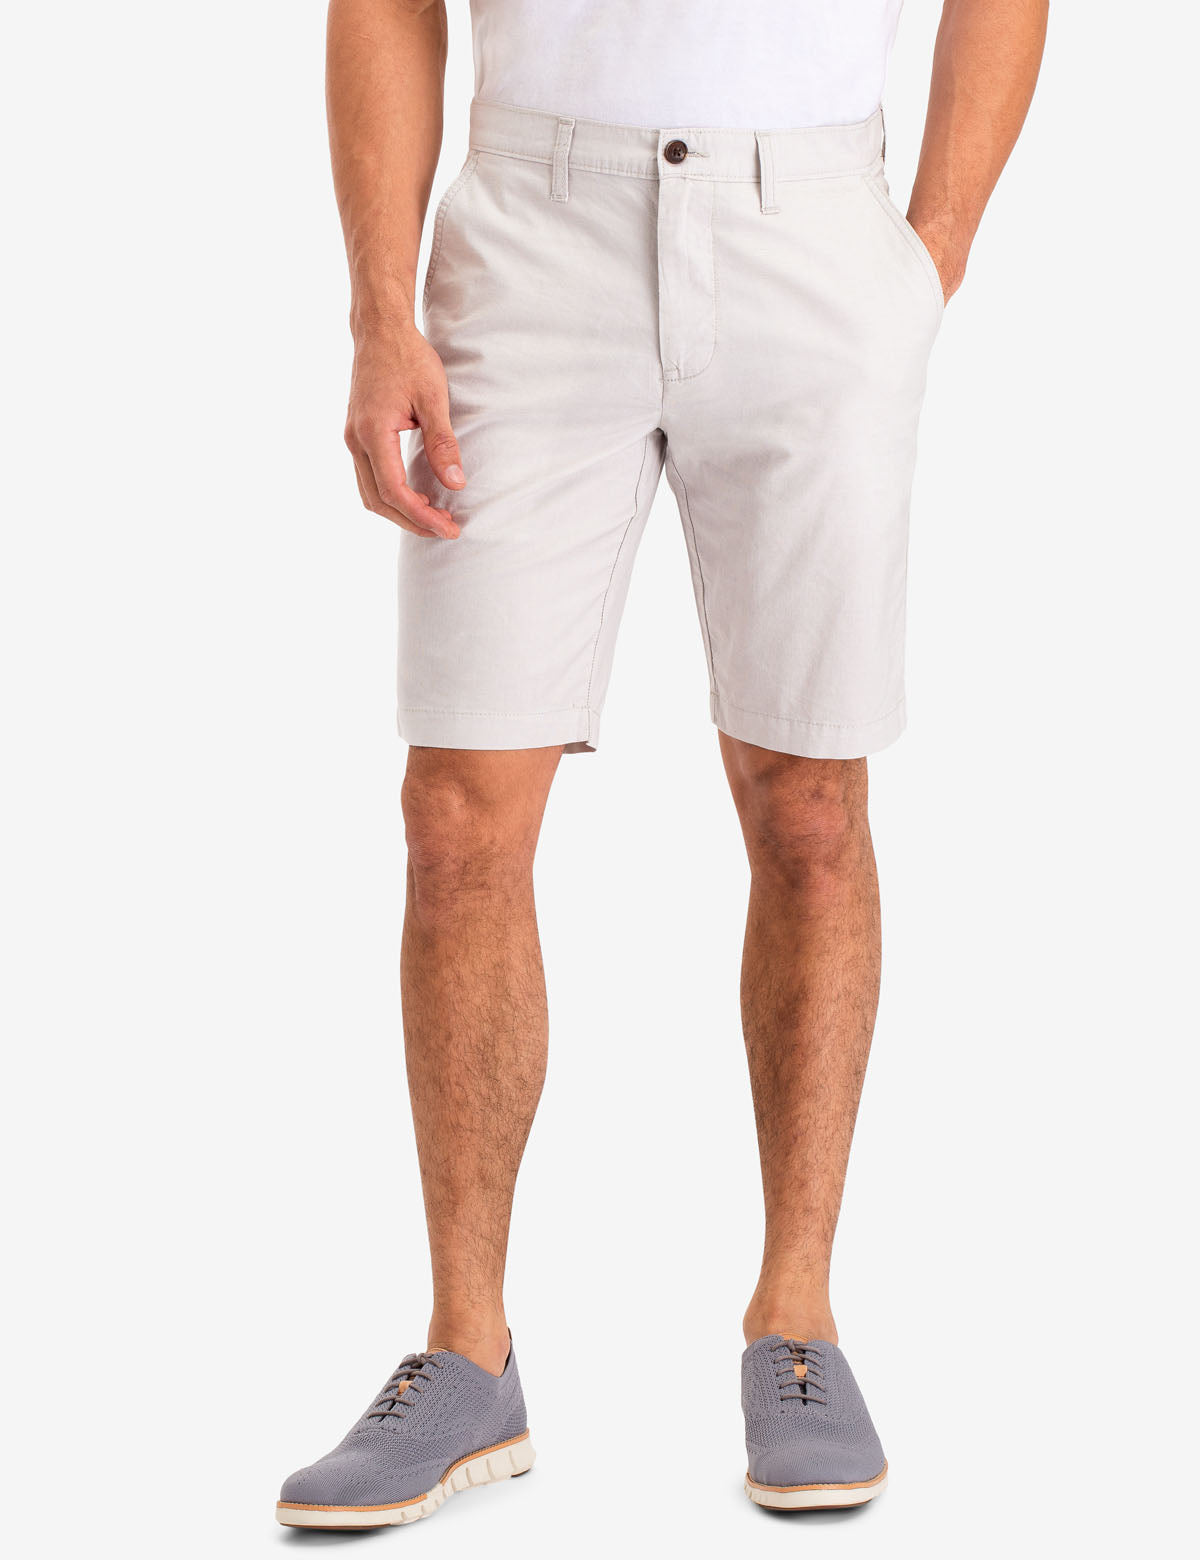 HARTFORD SUBTLE TEXTURED NOVELTY SHORTS - U.S. Polo Assn.